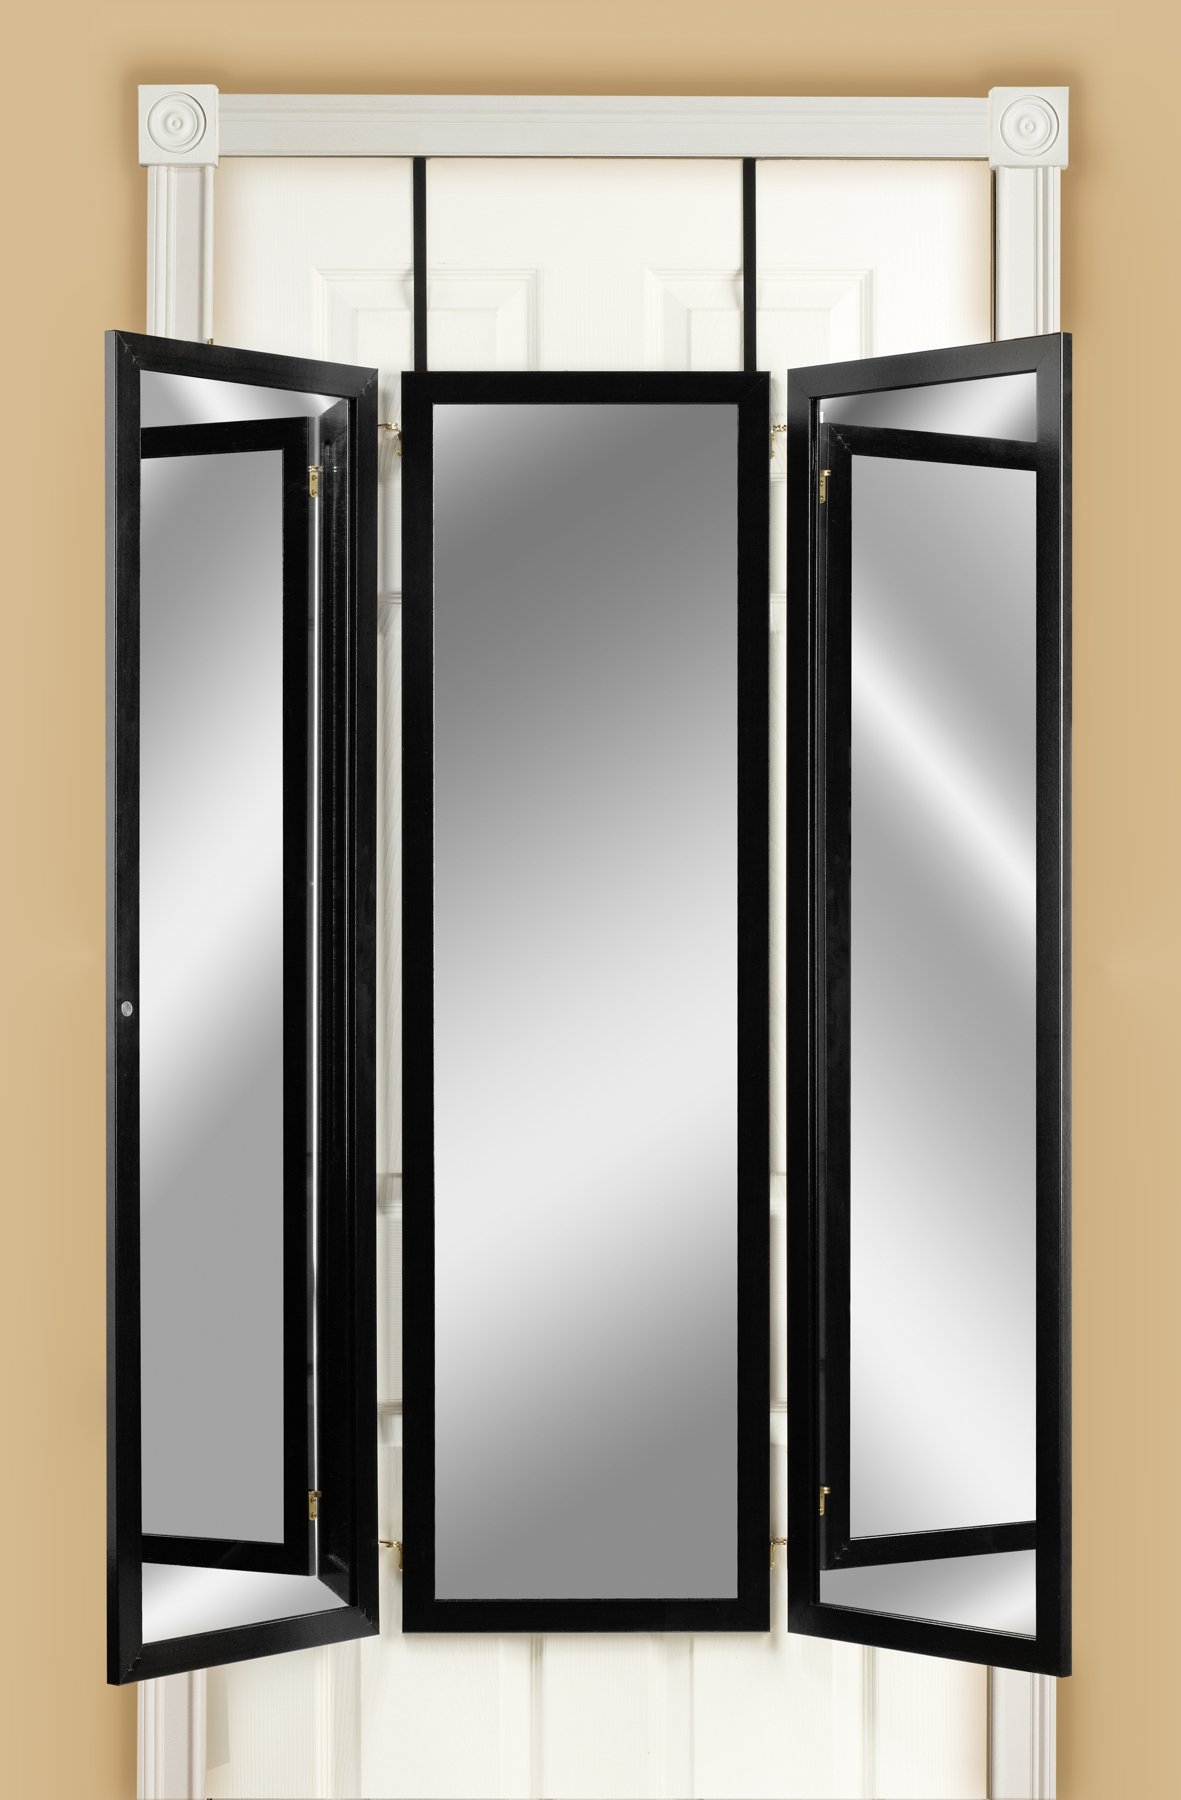 Mirrotek 3VU1448BK Triple View Professional Over The Door Dressing Mirror with 4 Mirrors, Black